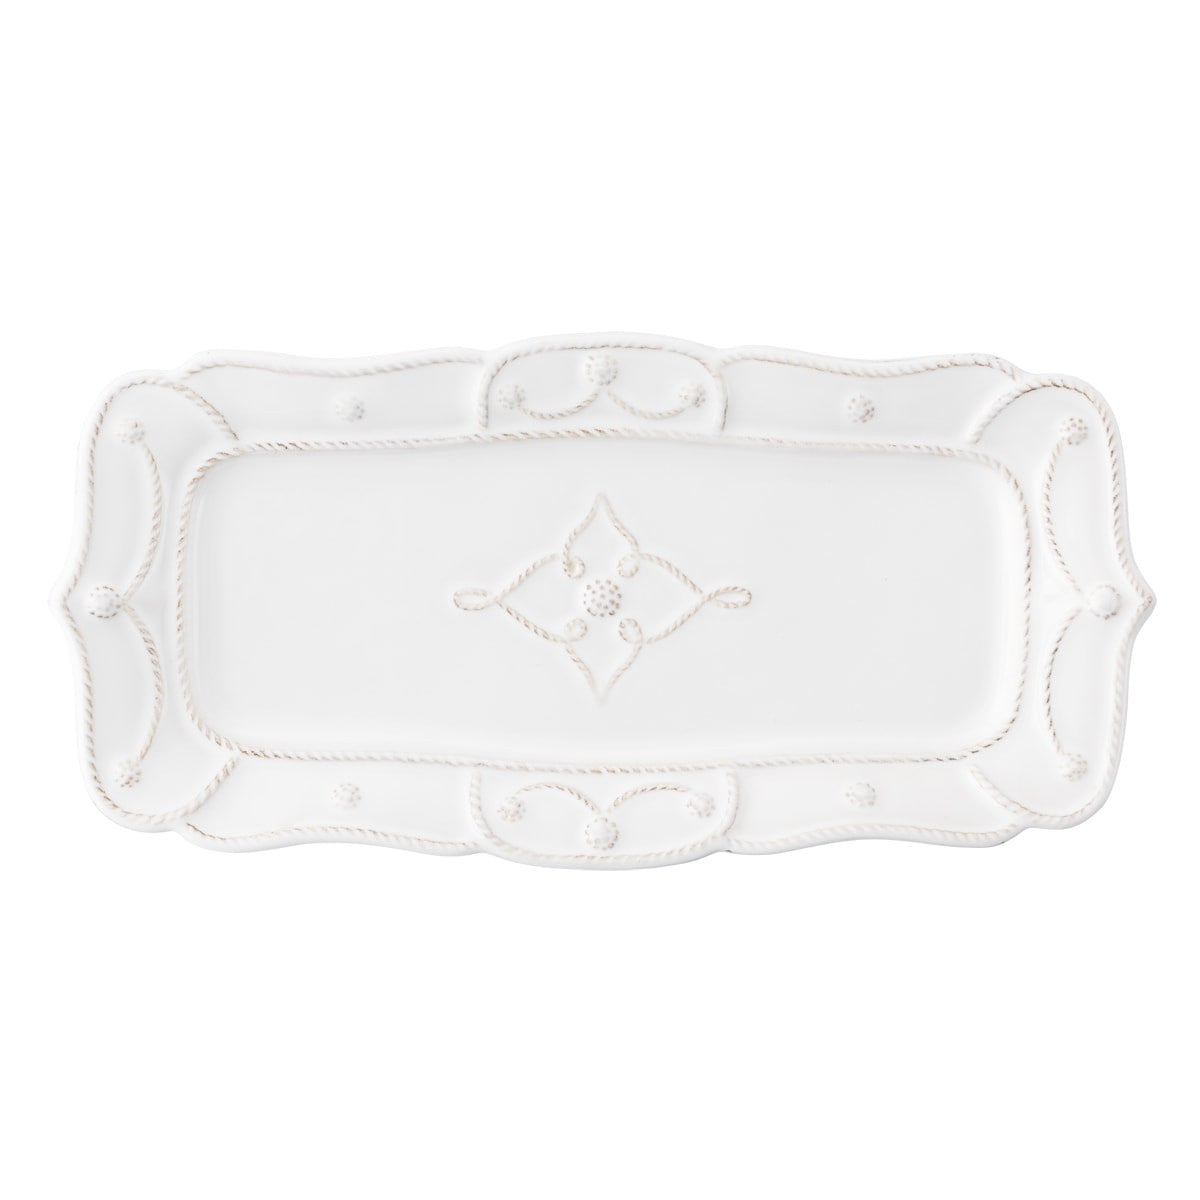 Juliska - Jardins du Monde Whitewash Hostess Tray